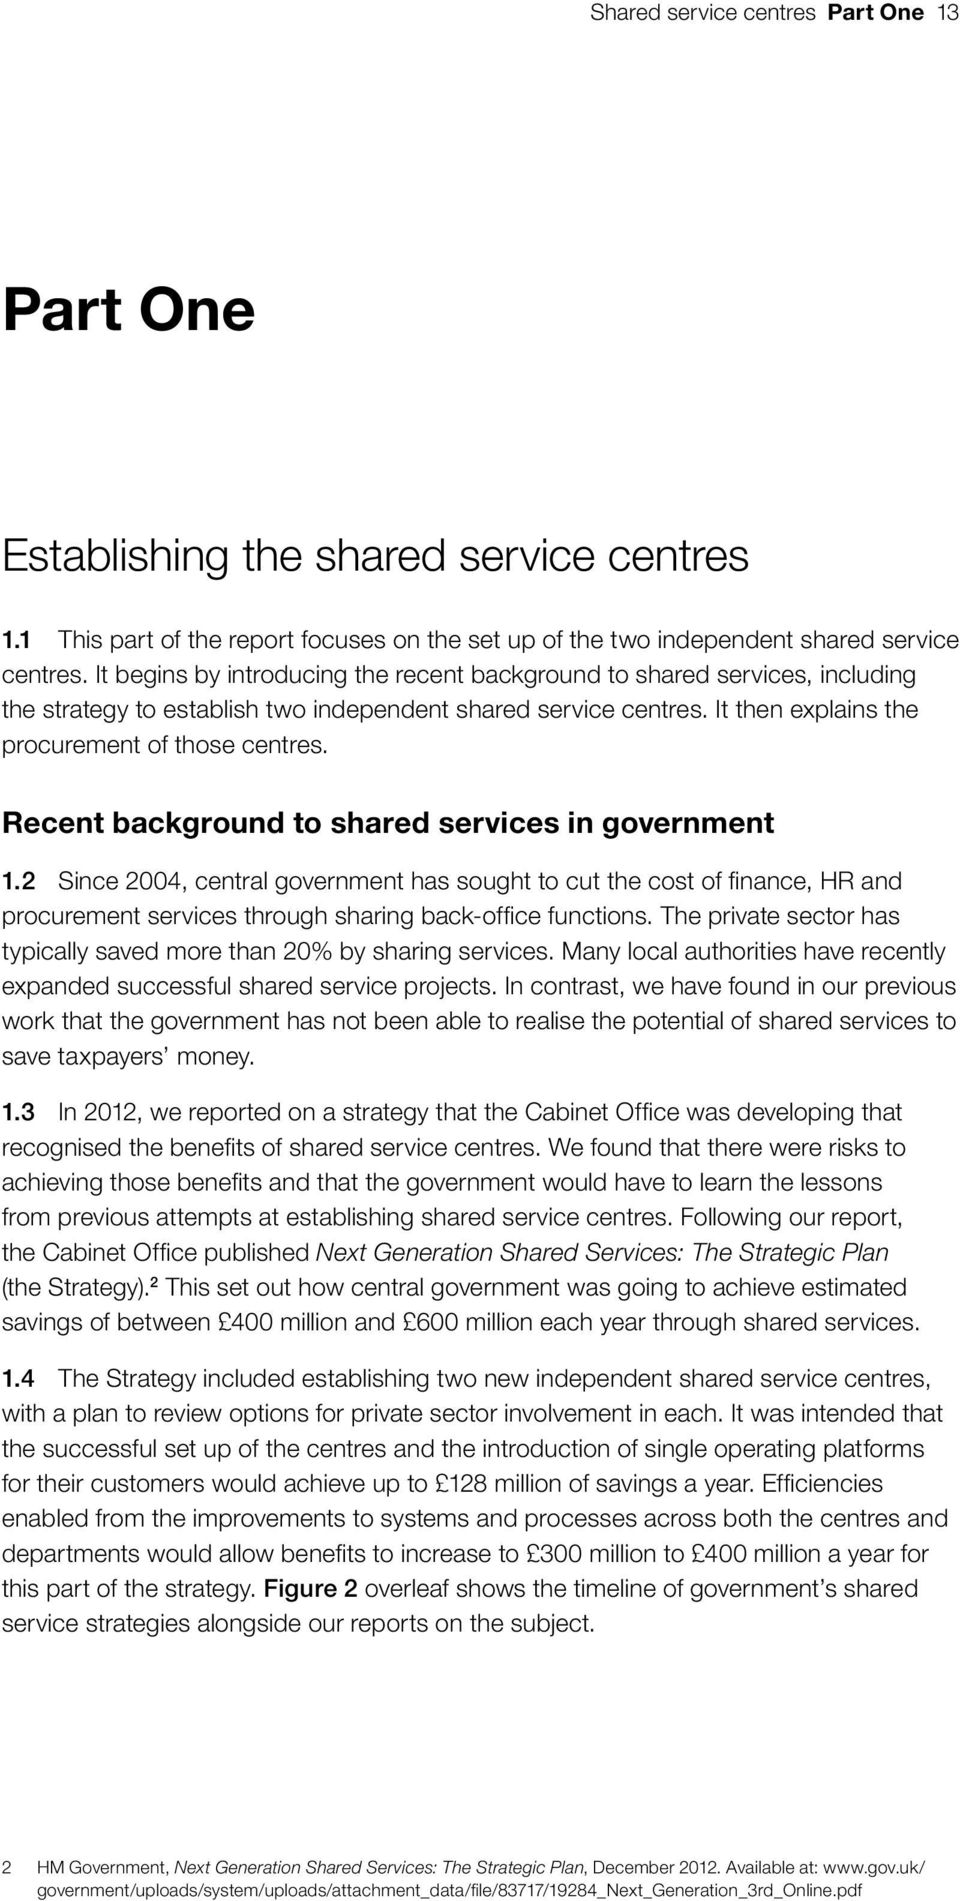 Recent background to shared services in government 1.2 Since 2004, central government has sought to cut the cost of finance, HR and procurement services through sharing back-office functions.